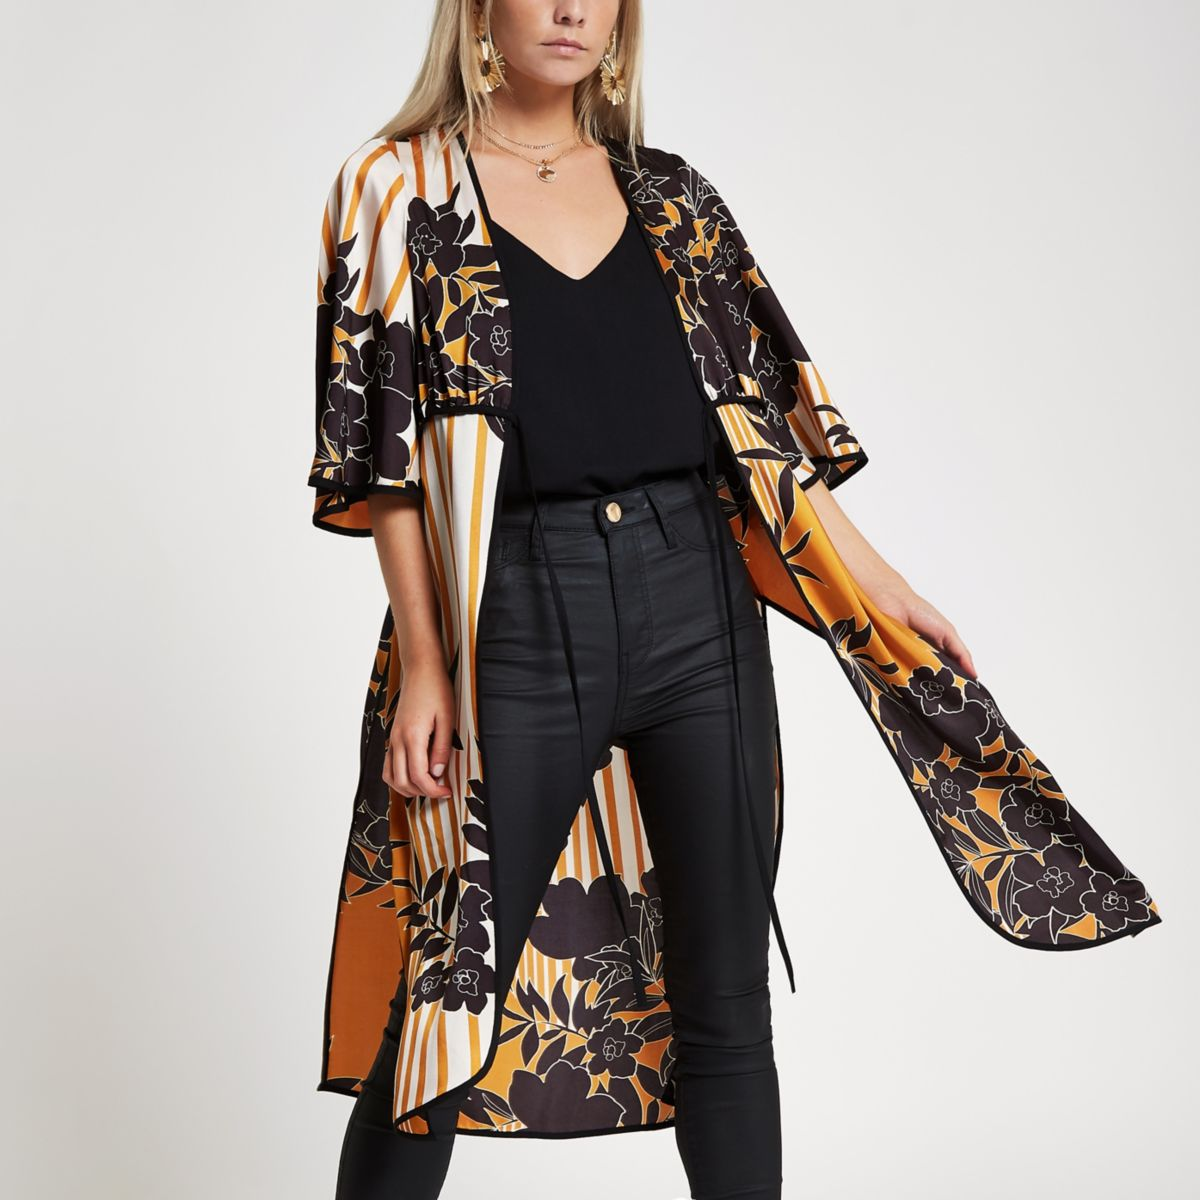 Low Price Sale Online Womens Petite Orange floral tie front kimono River Island Cheap High Quality Outlet With Paypal For Cheap Discount Buy Cheap Footlocker giCULI